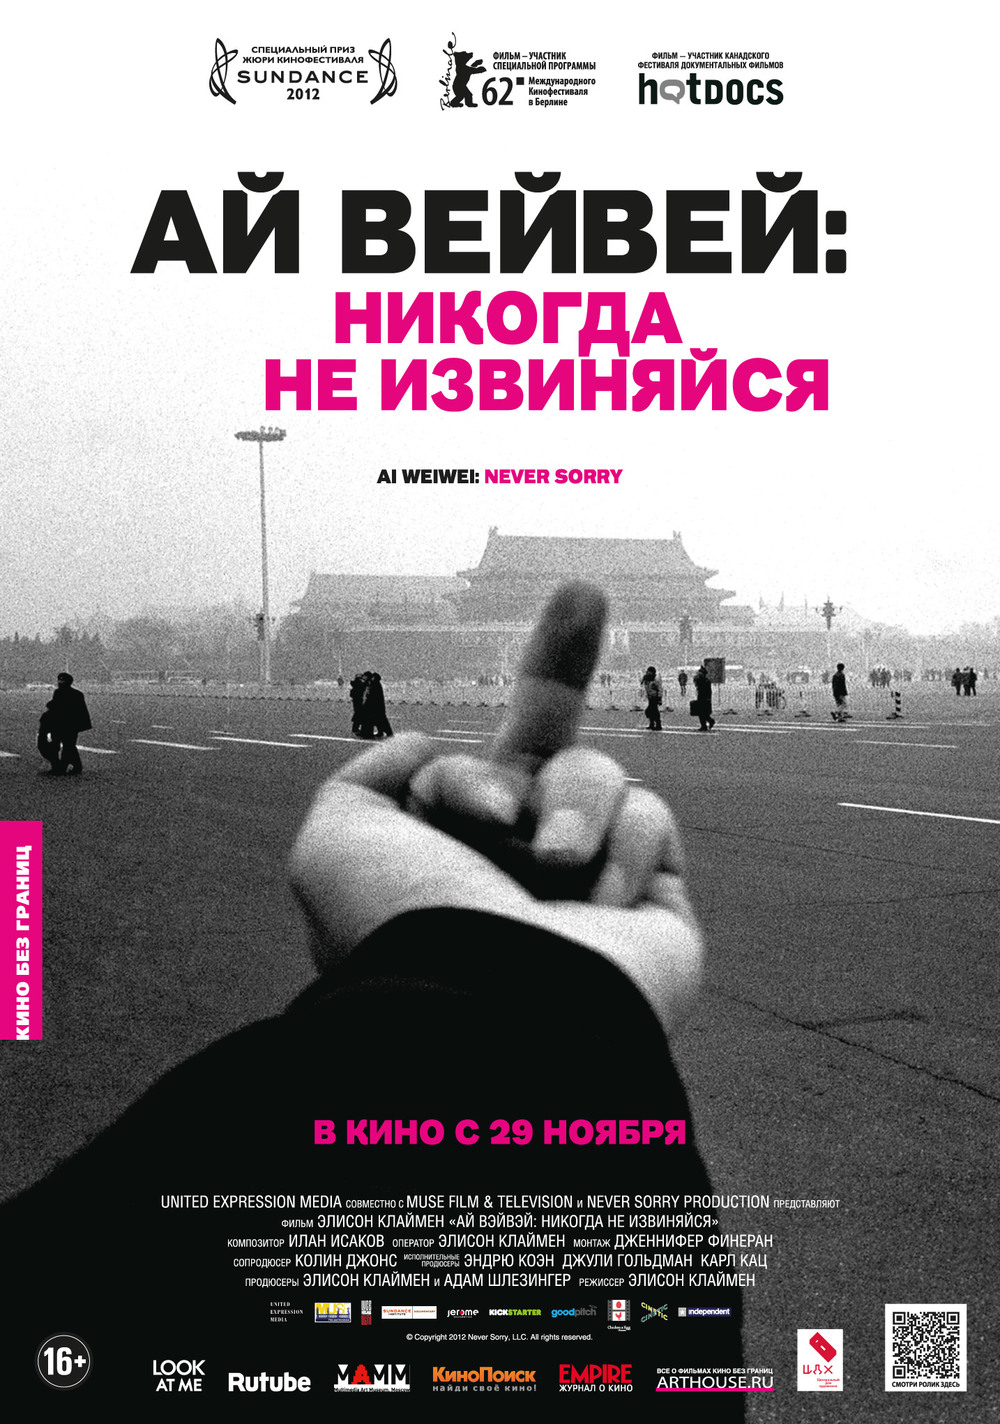 Russia aiweiwei_poster_700x1000_preview.jpg